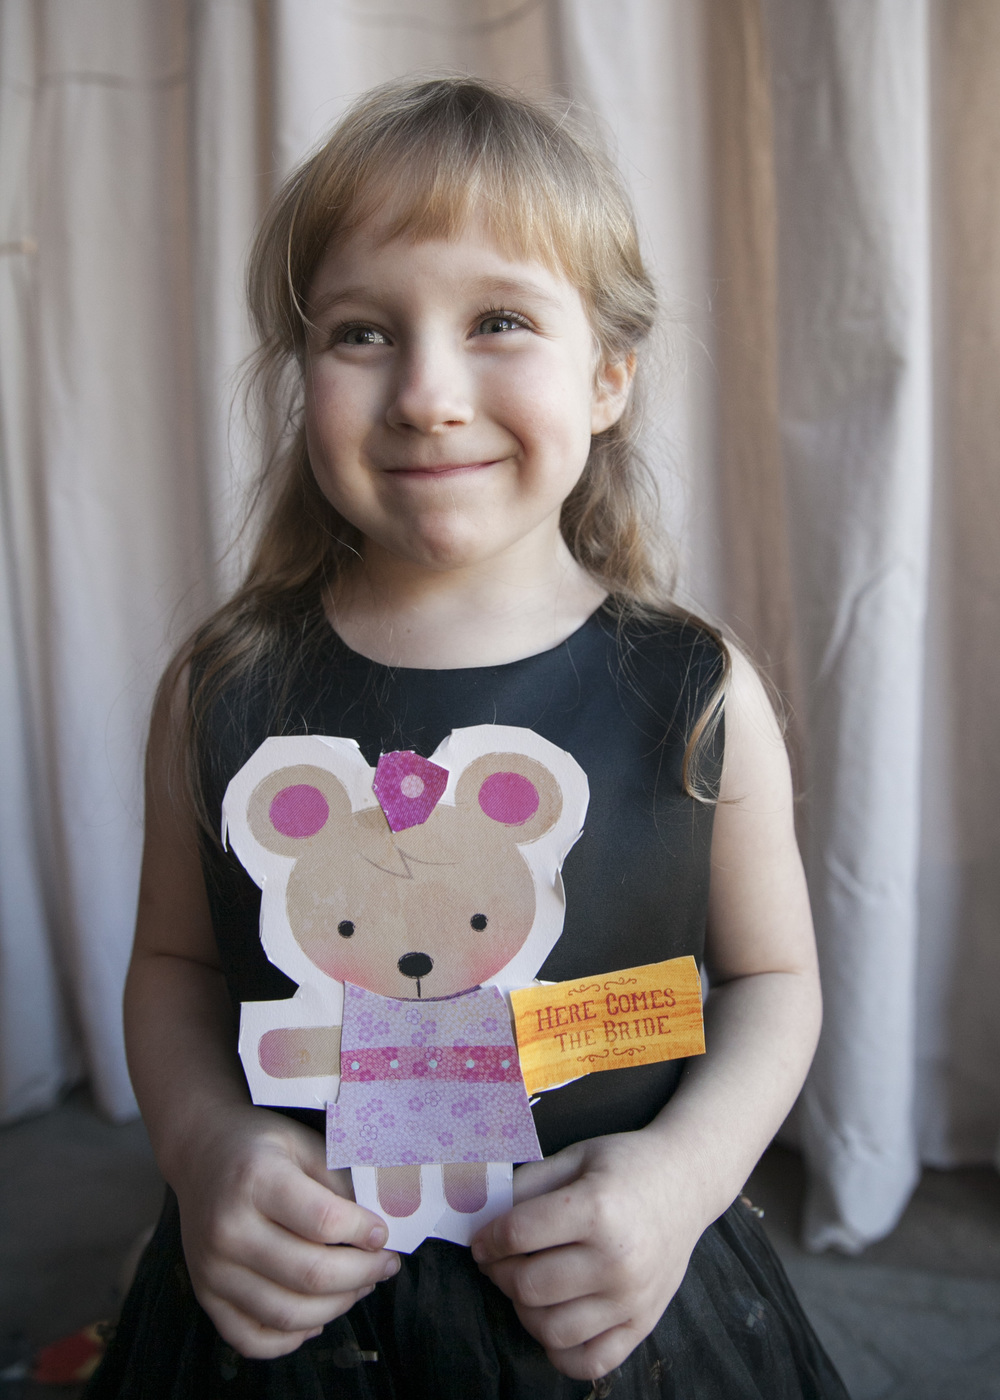 SO PROUD FOR WHAT SHE MADE! #SUITEHEARTSHOP #FLOWERGIRLPAPERDOLL